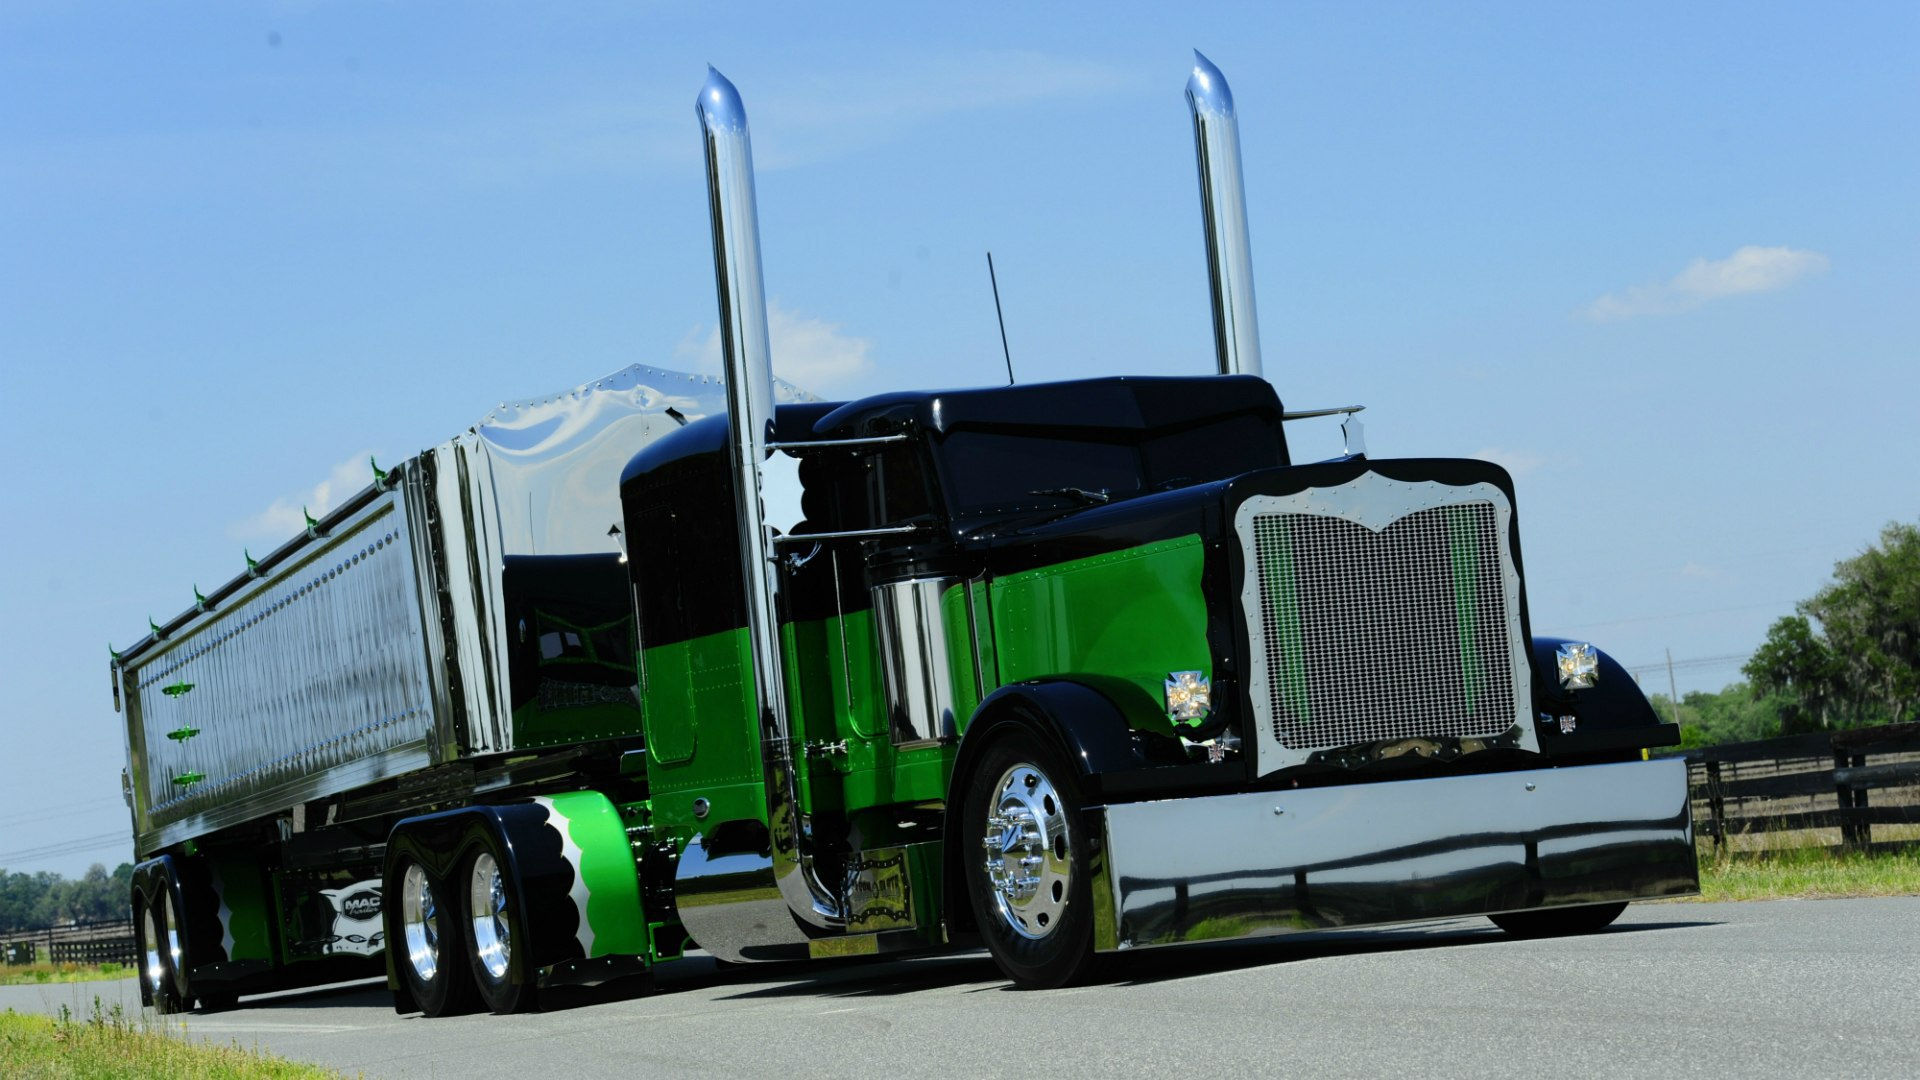 American Truck Peterbilt 379 EXHD wallpapers and images   wallpapers 1920x1080